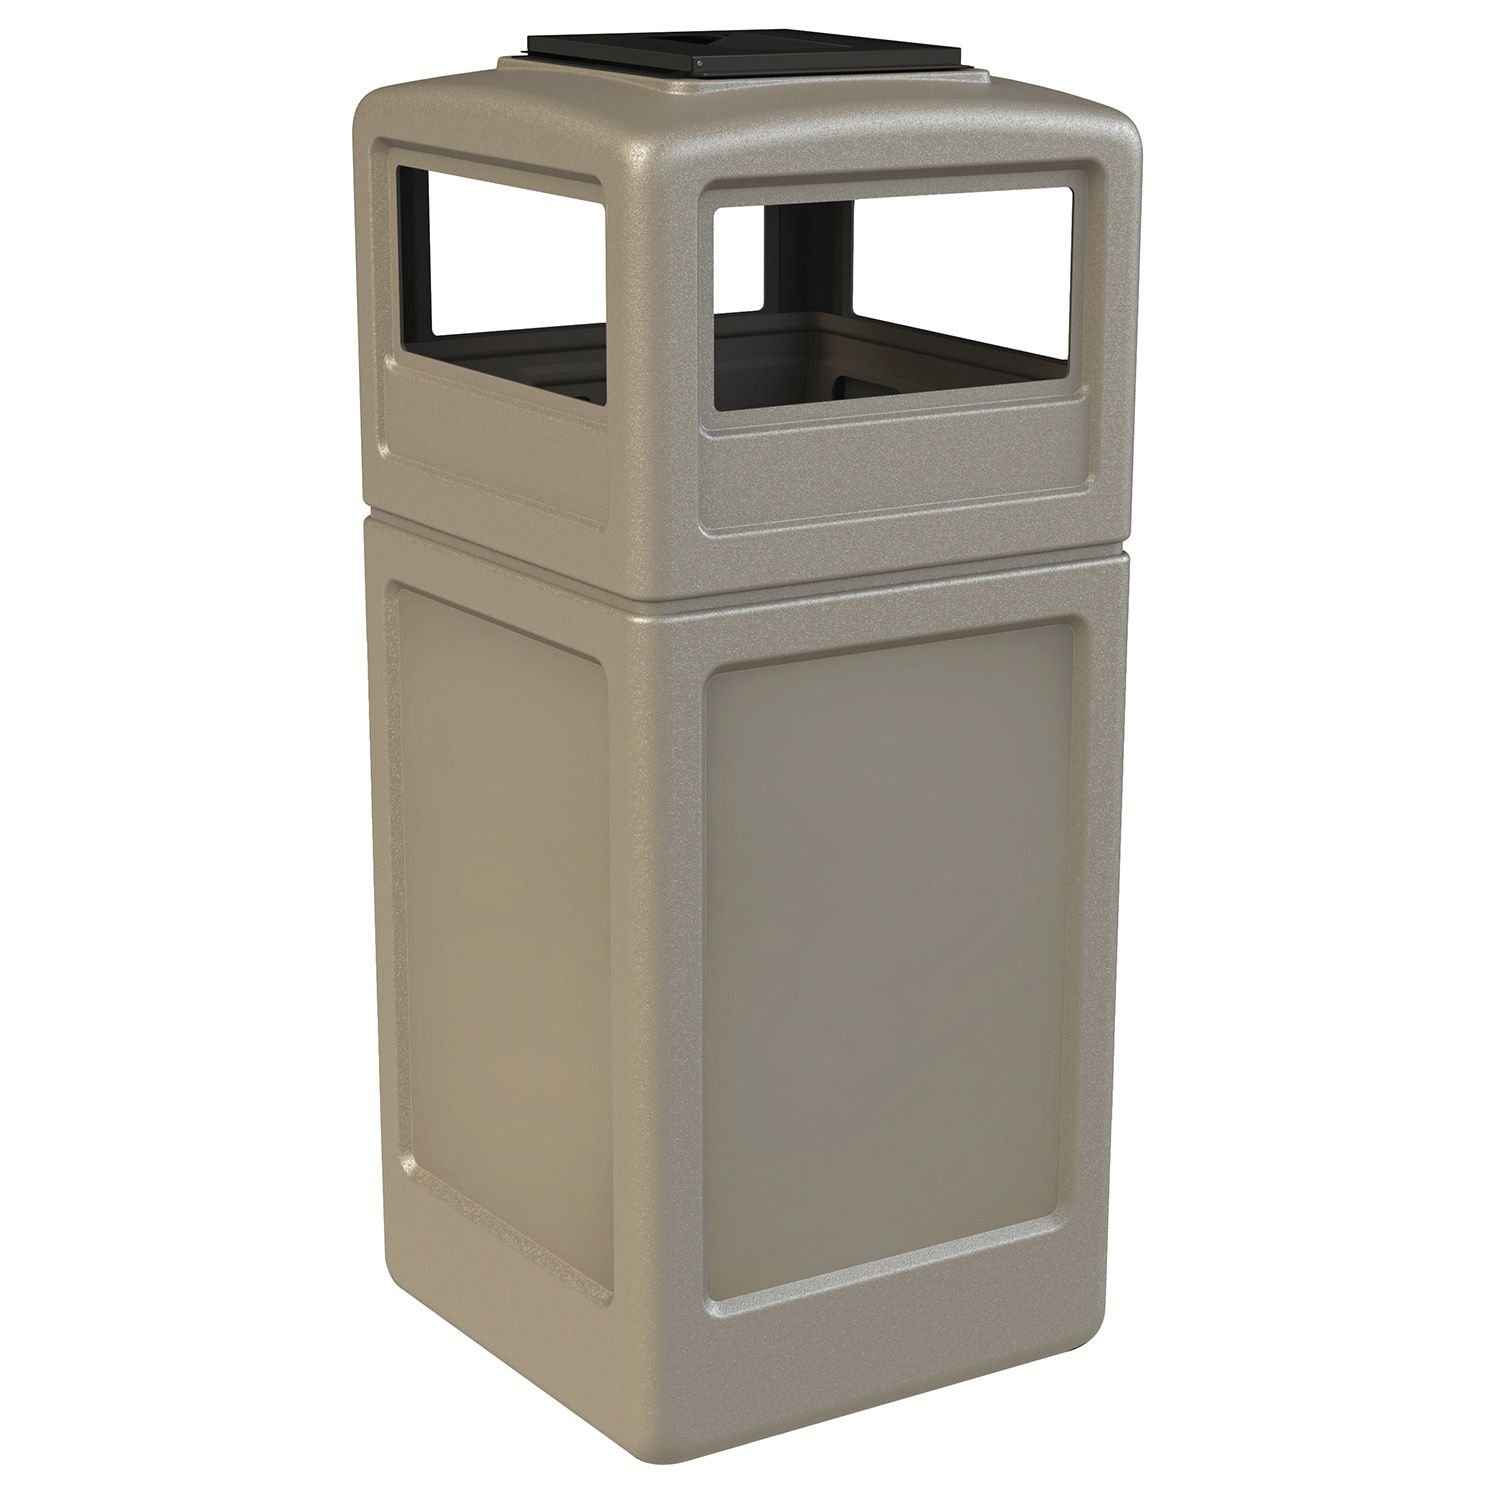 Garbage Trash Can Bin Commercial Waste Container with Ashtray Lid, Polyethylene, 42-gal, Beige